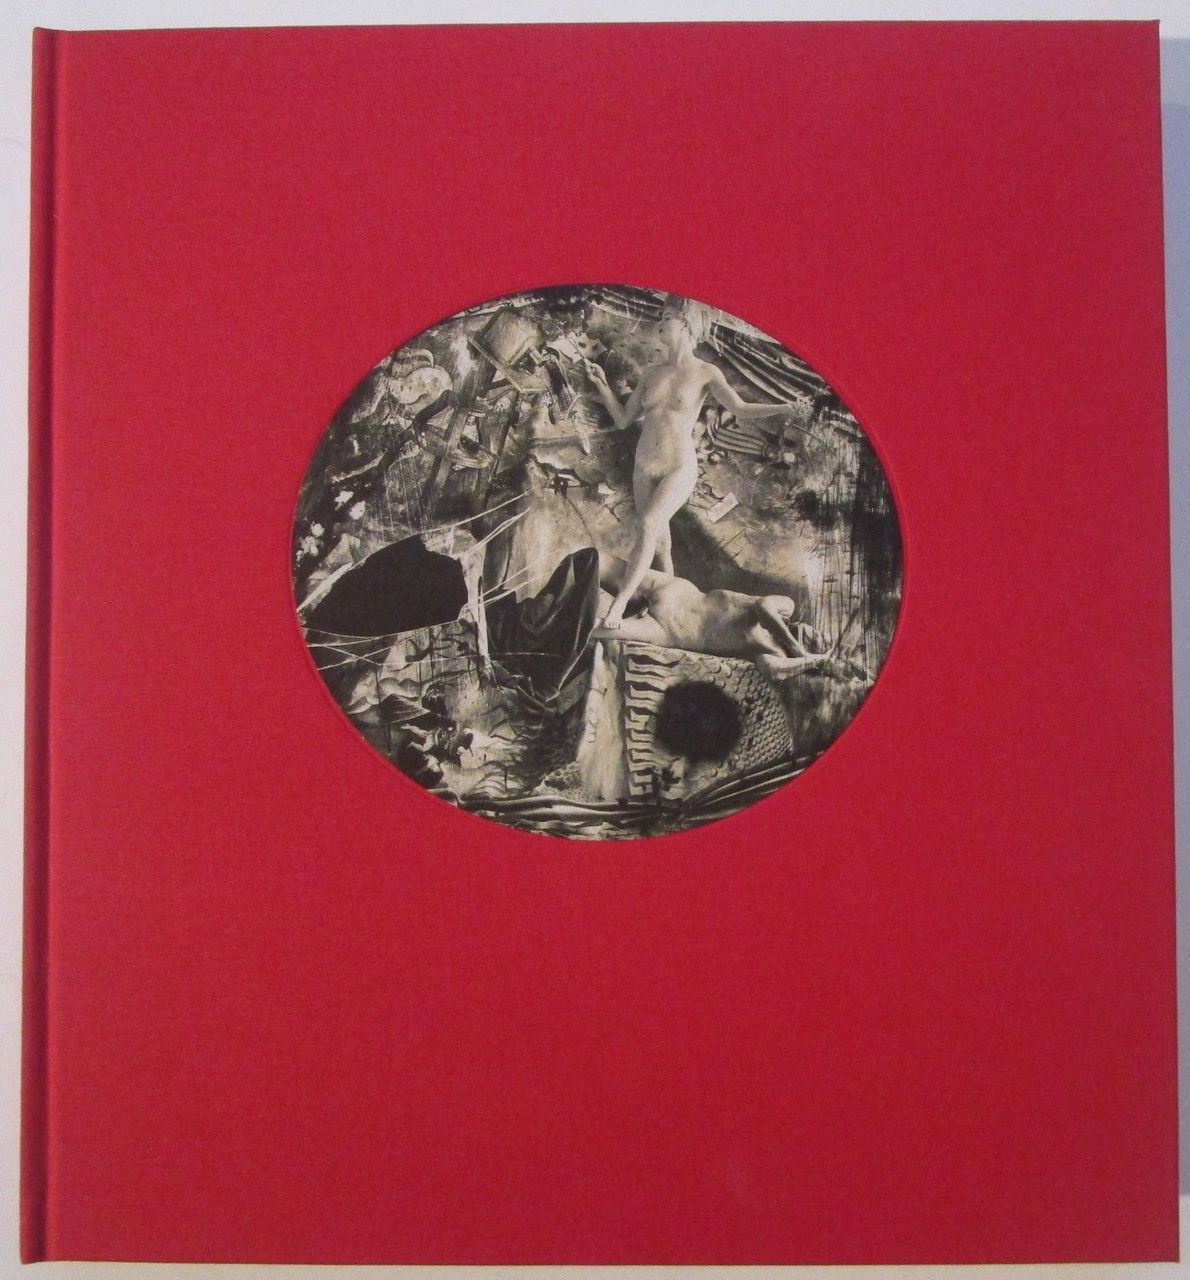 SONGS OF INNOCENCE & EXPERIENCE, by William Blake; photos by Joel-Peter Witkin - 2004 [SIGNED 236/915]